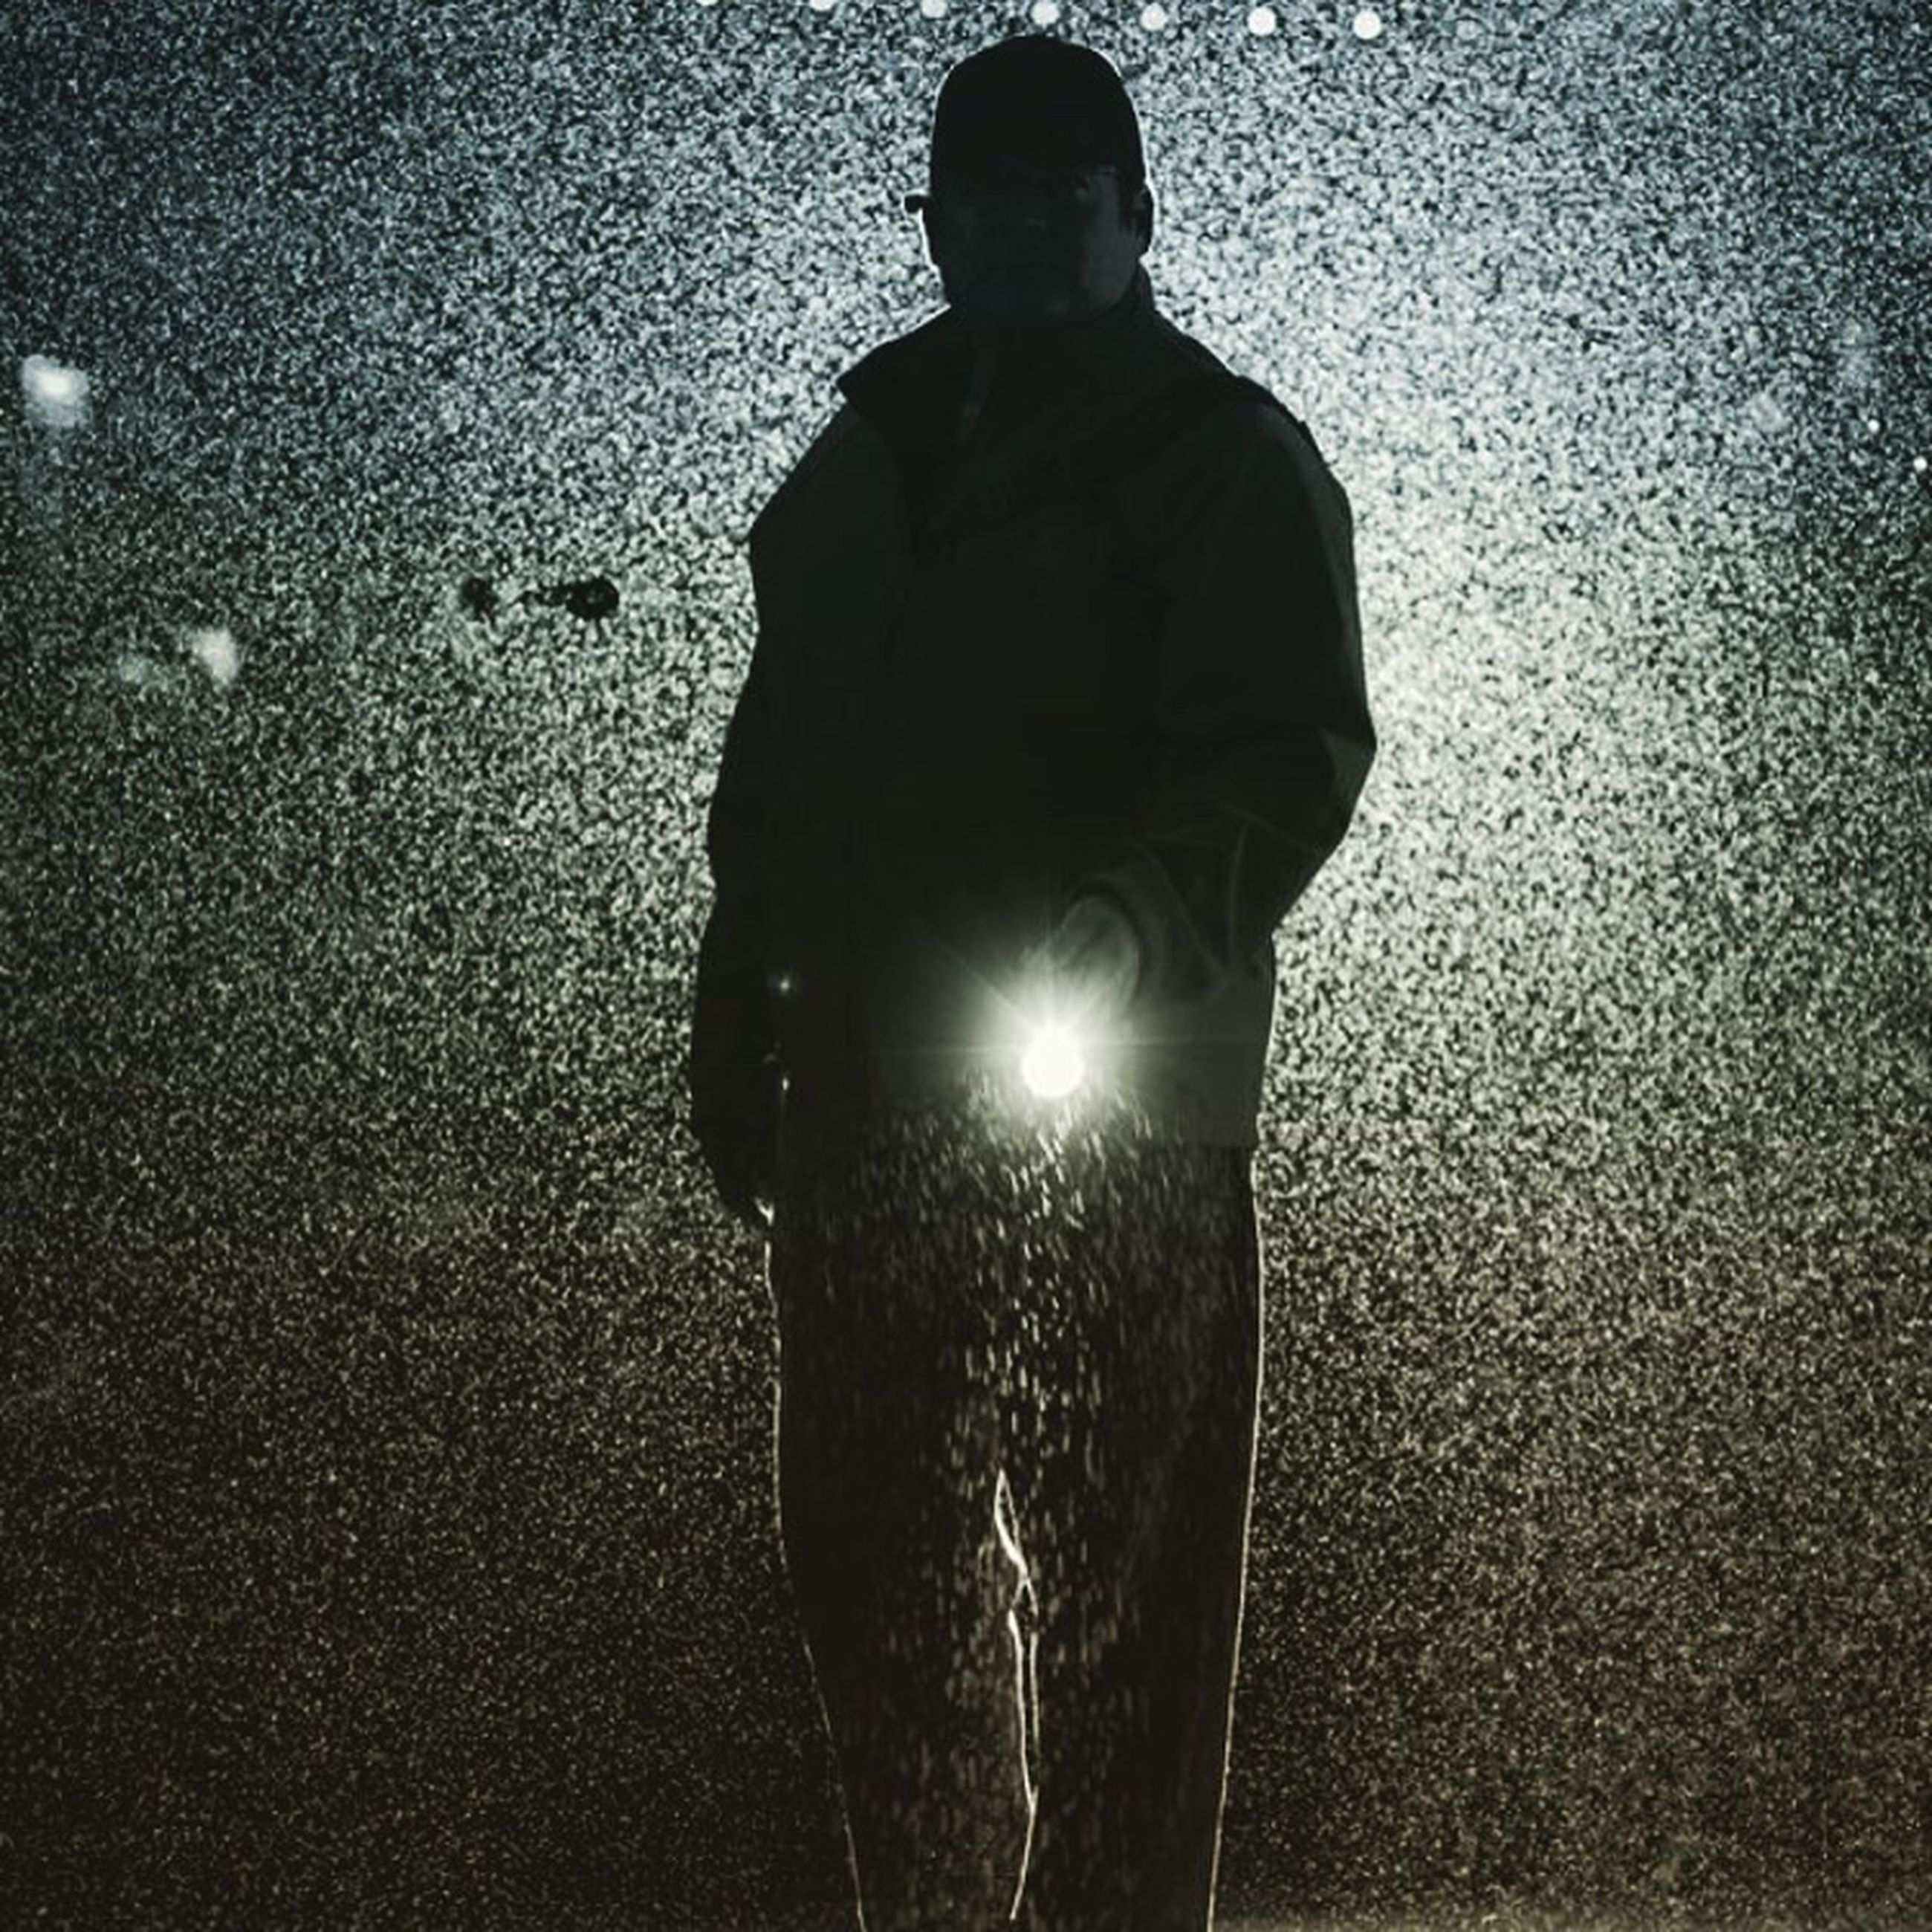 standing, night, lifestyles, shadow, men, sunlight, street, close-up, leisure activity, outdoors, reflection, unrecognizable person, dark, silhouette, person, human representation, illuminated, copy space